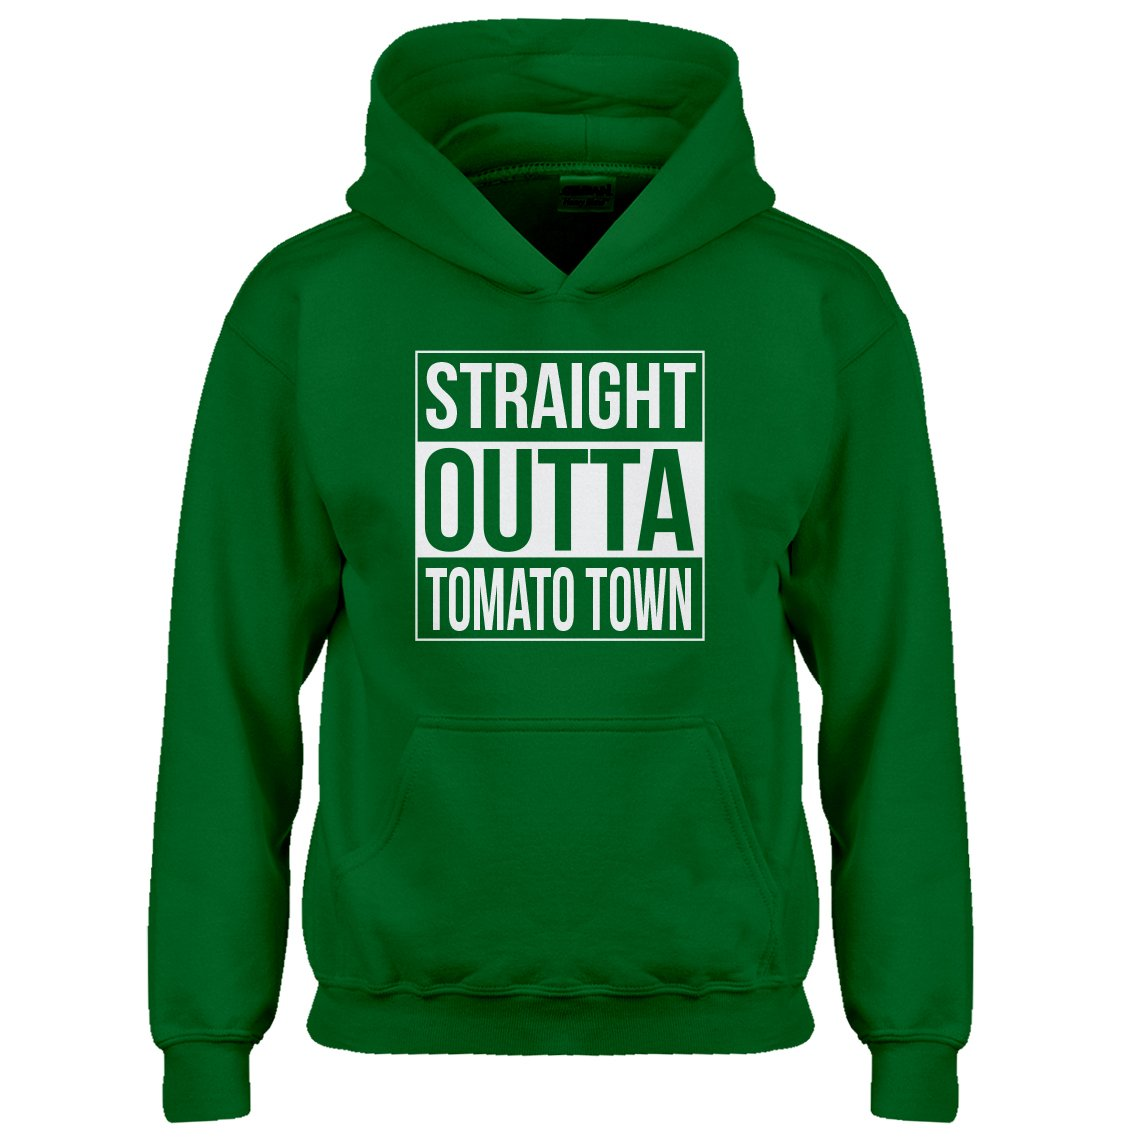 Indica Plateau Youth Straight Outta Tomato Town Kids Hoodie 3339-Z